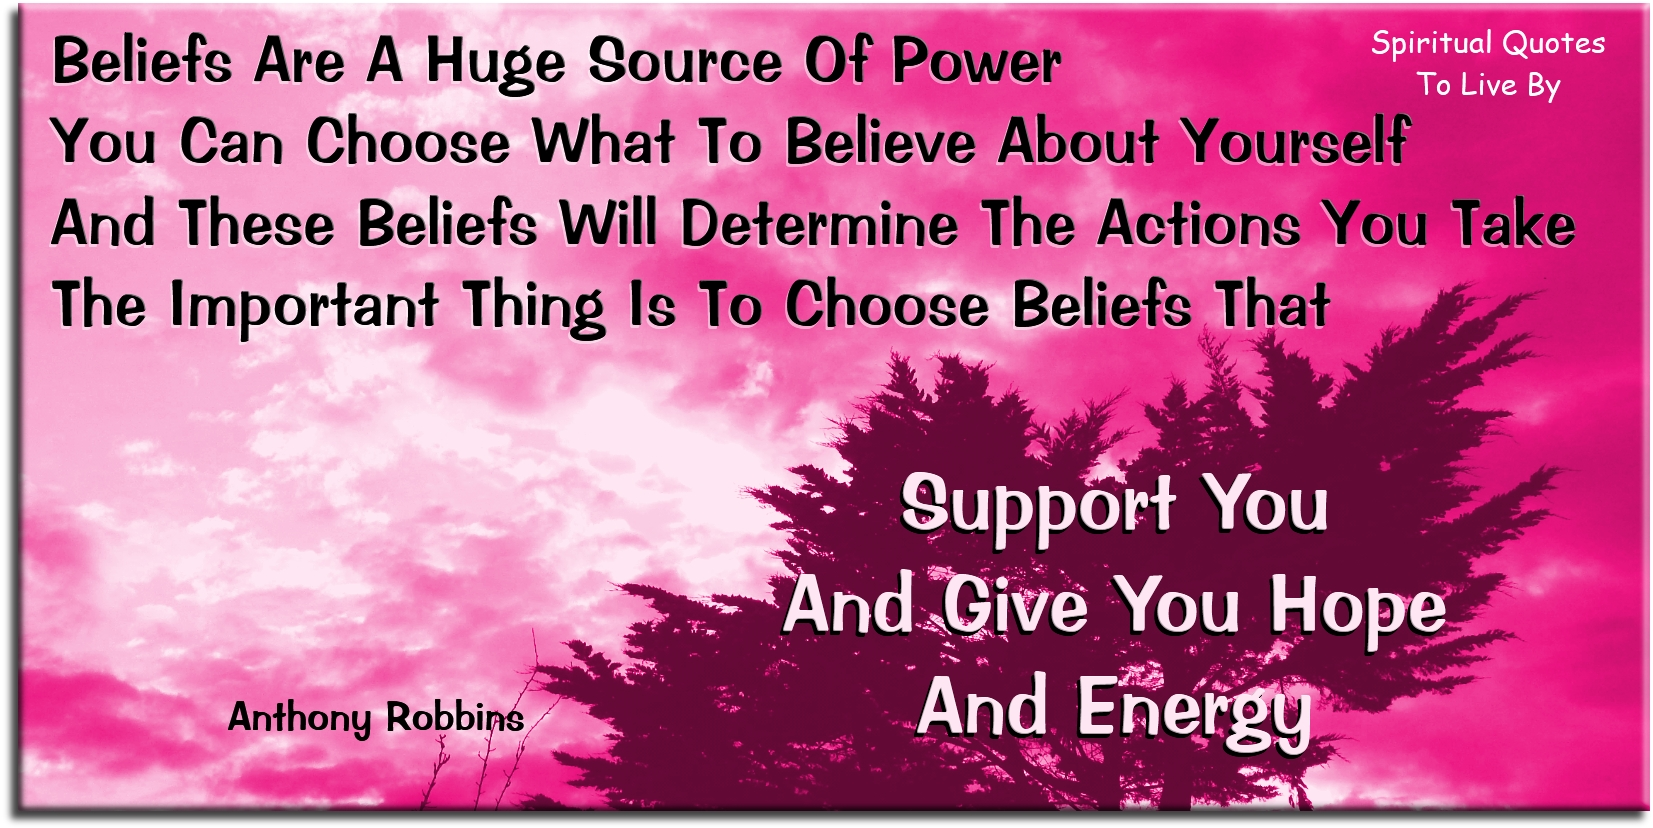 Anthony Robbins quote: Beliefs are a huge source of power. You can choose what to believe about yourself, and these beliefs will determine the actions you take... - Spiritual Quotes To Live By